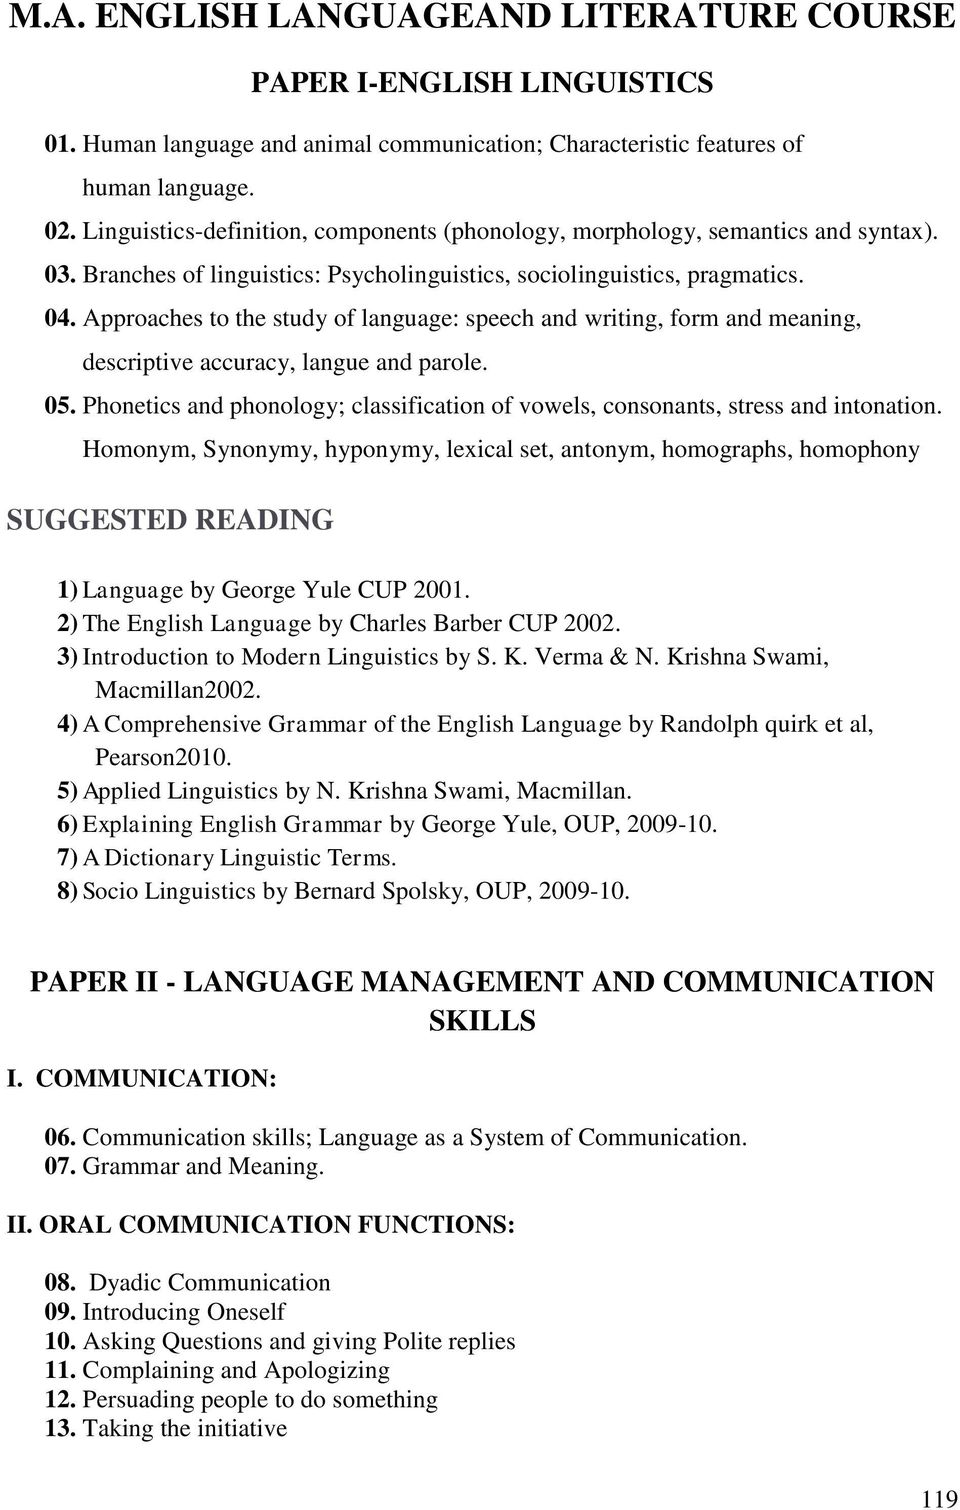 Essay Teachers Written Communication Skills Essay Mediafiles Essay On Civil Disobedience also Essays About Health Care Written Communication Skills Essay Coursework Academic Service The Great Gatsby Essay Questions